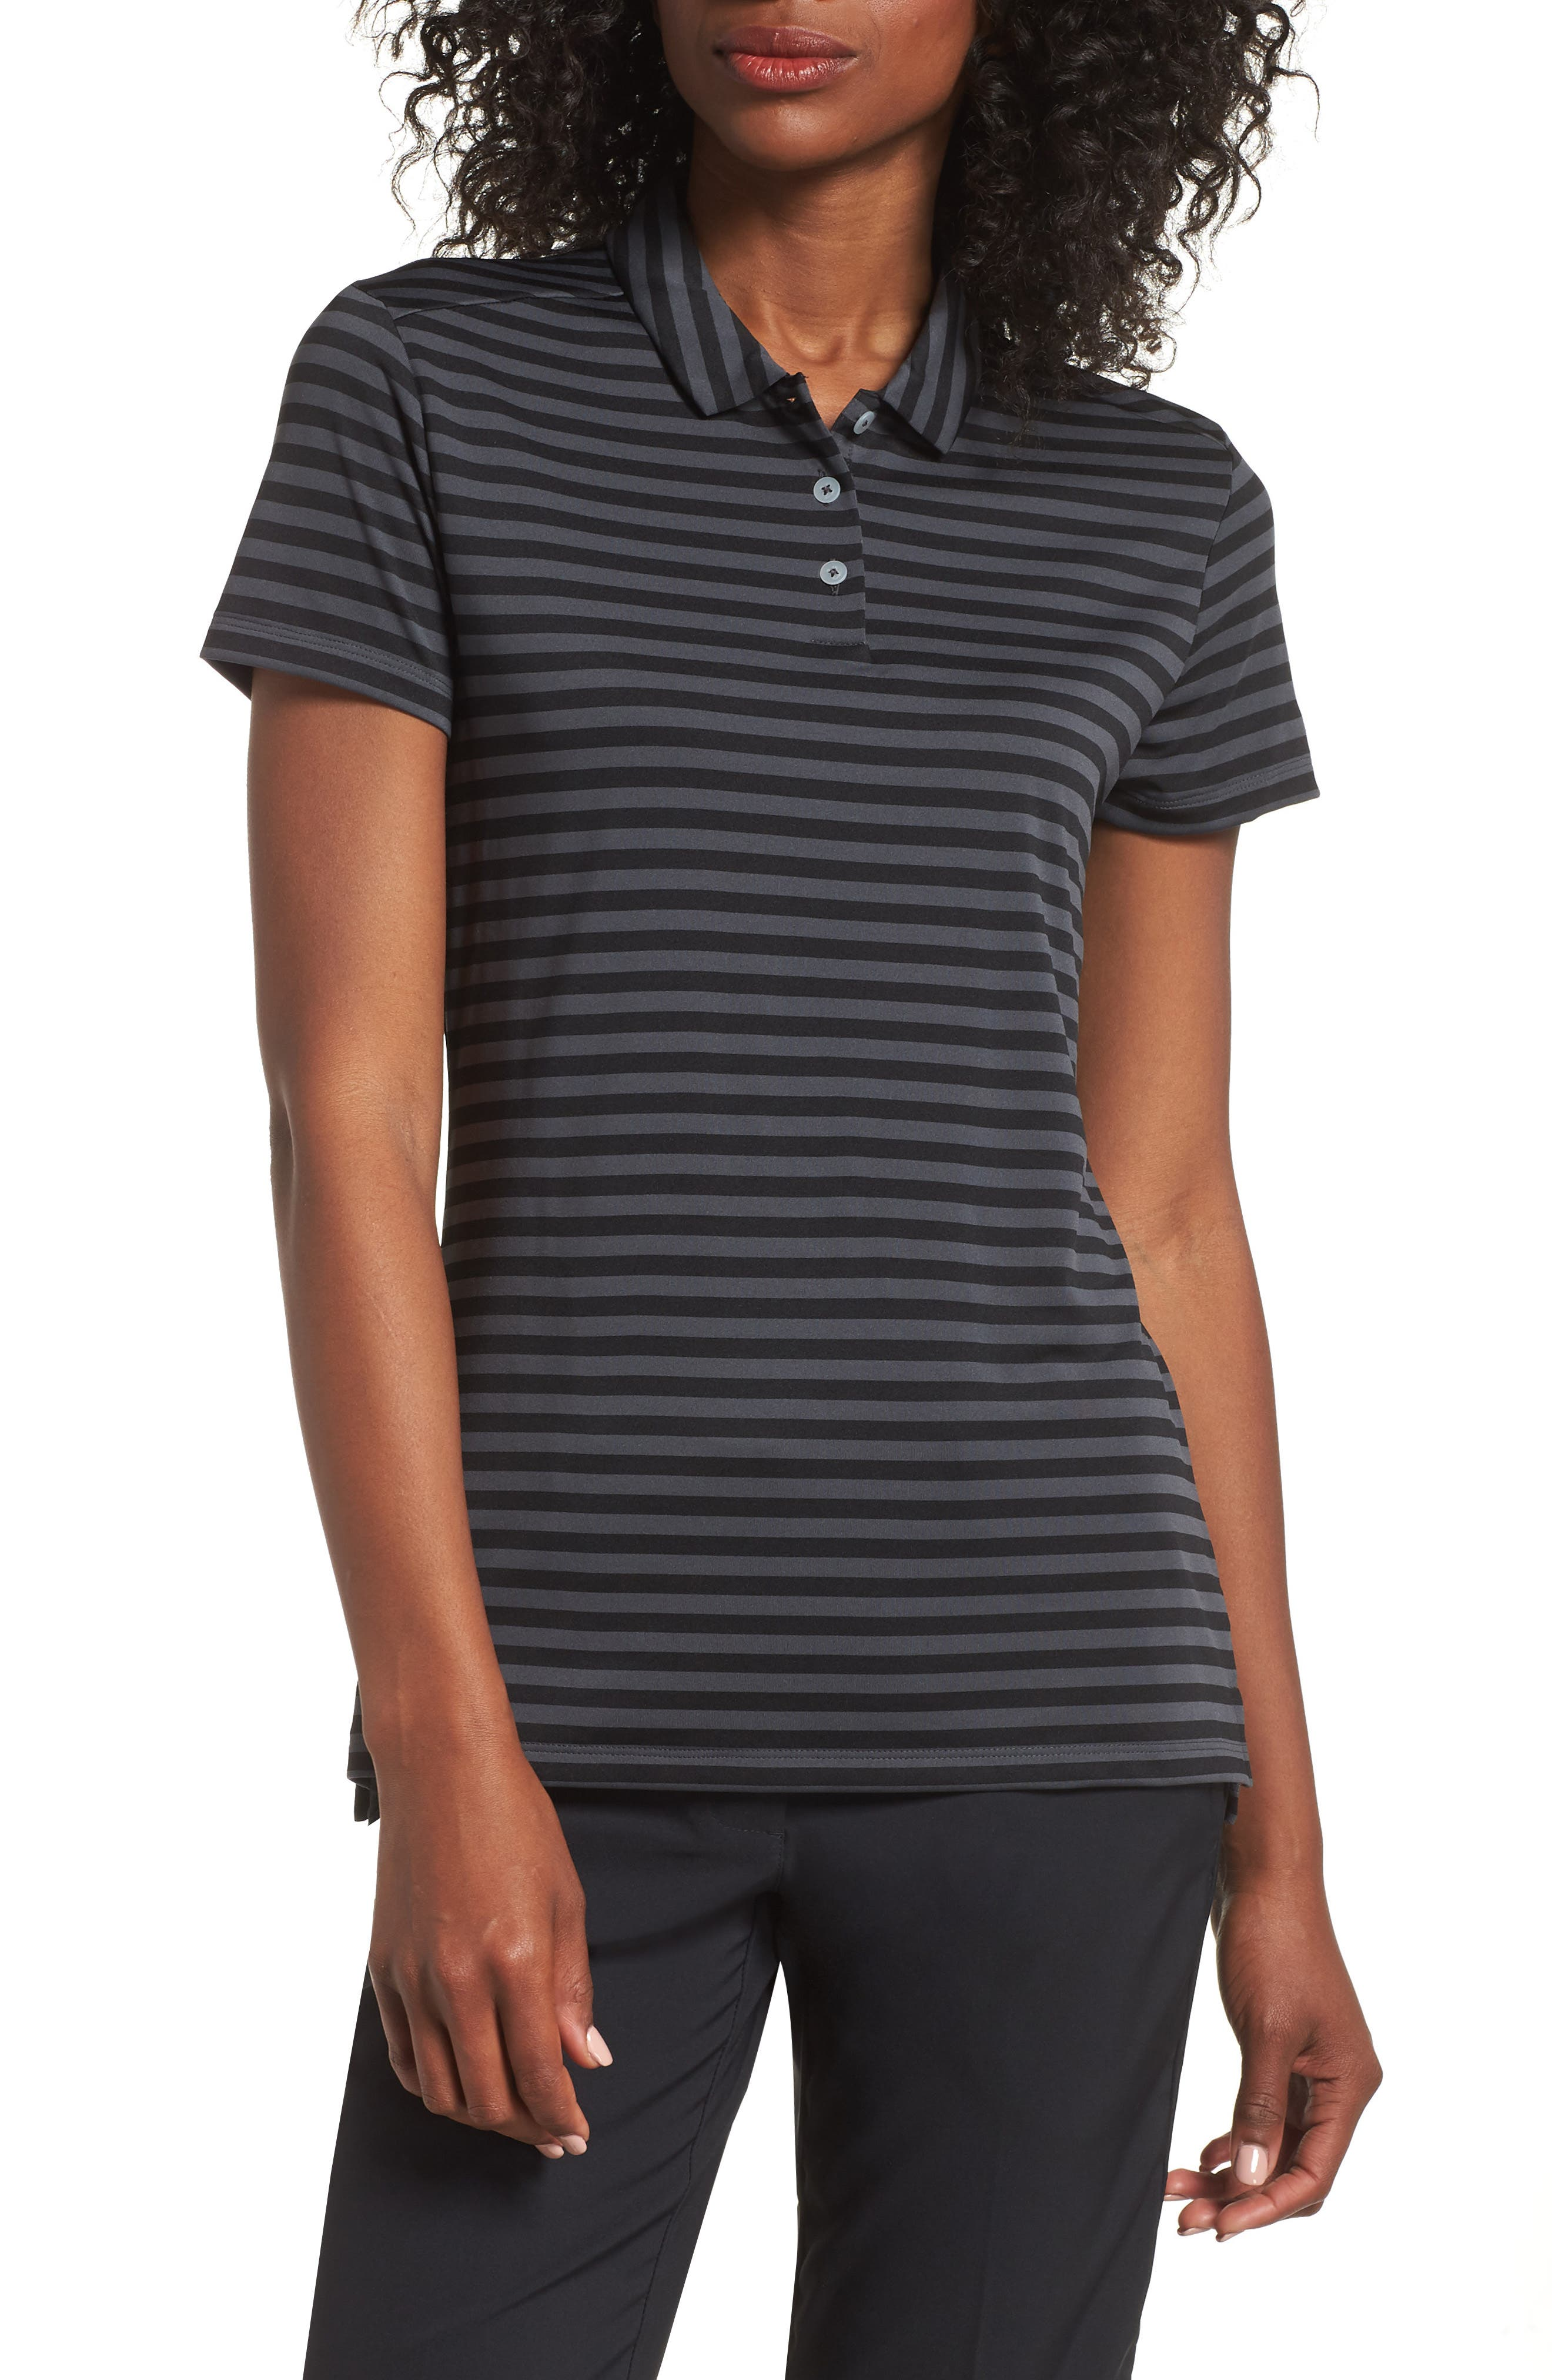 Dry Golf Polo,                             Main thumbnail 1, color,                             BLACK/ ANTHRACITE/ SILVER